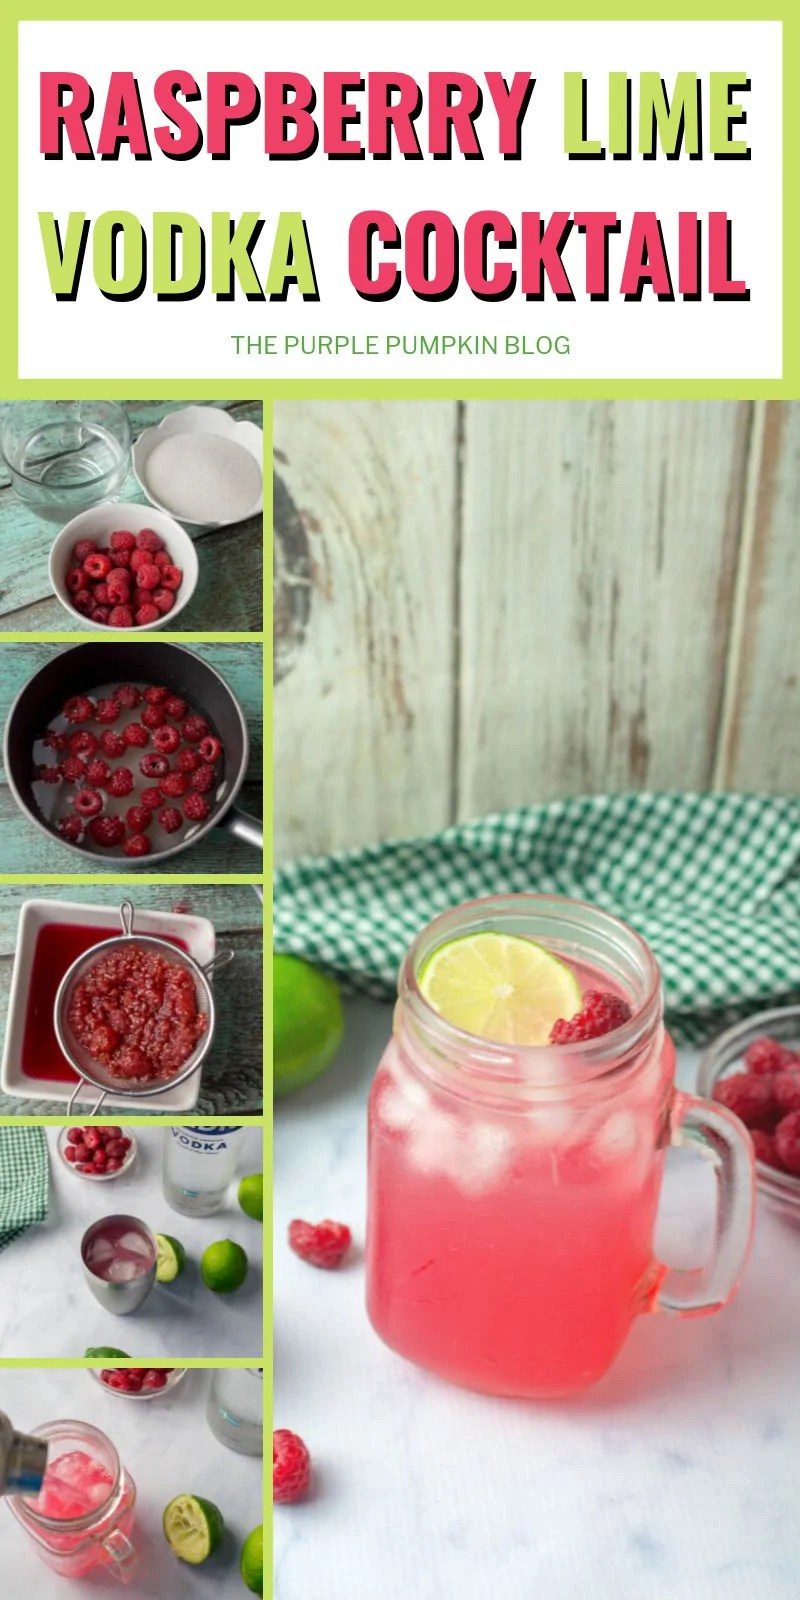 Raspberry lime vodka cocktail ingredients, plus step-by-step images of making the cocktail